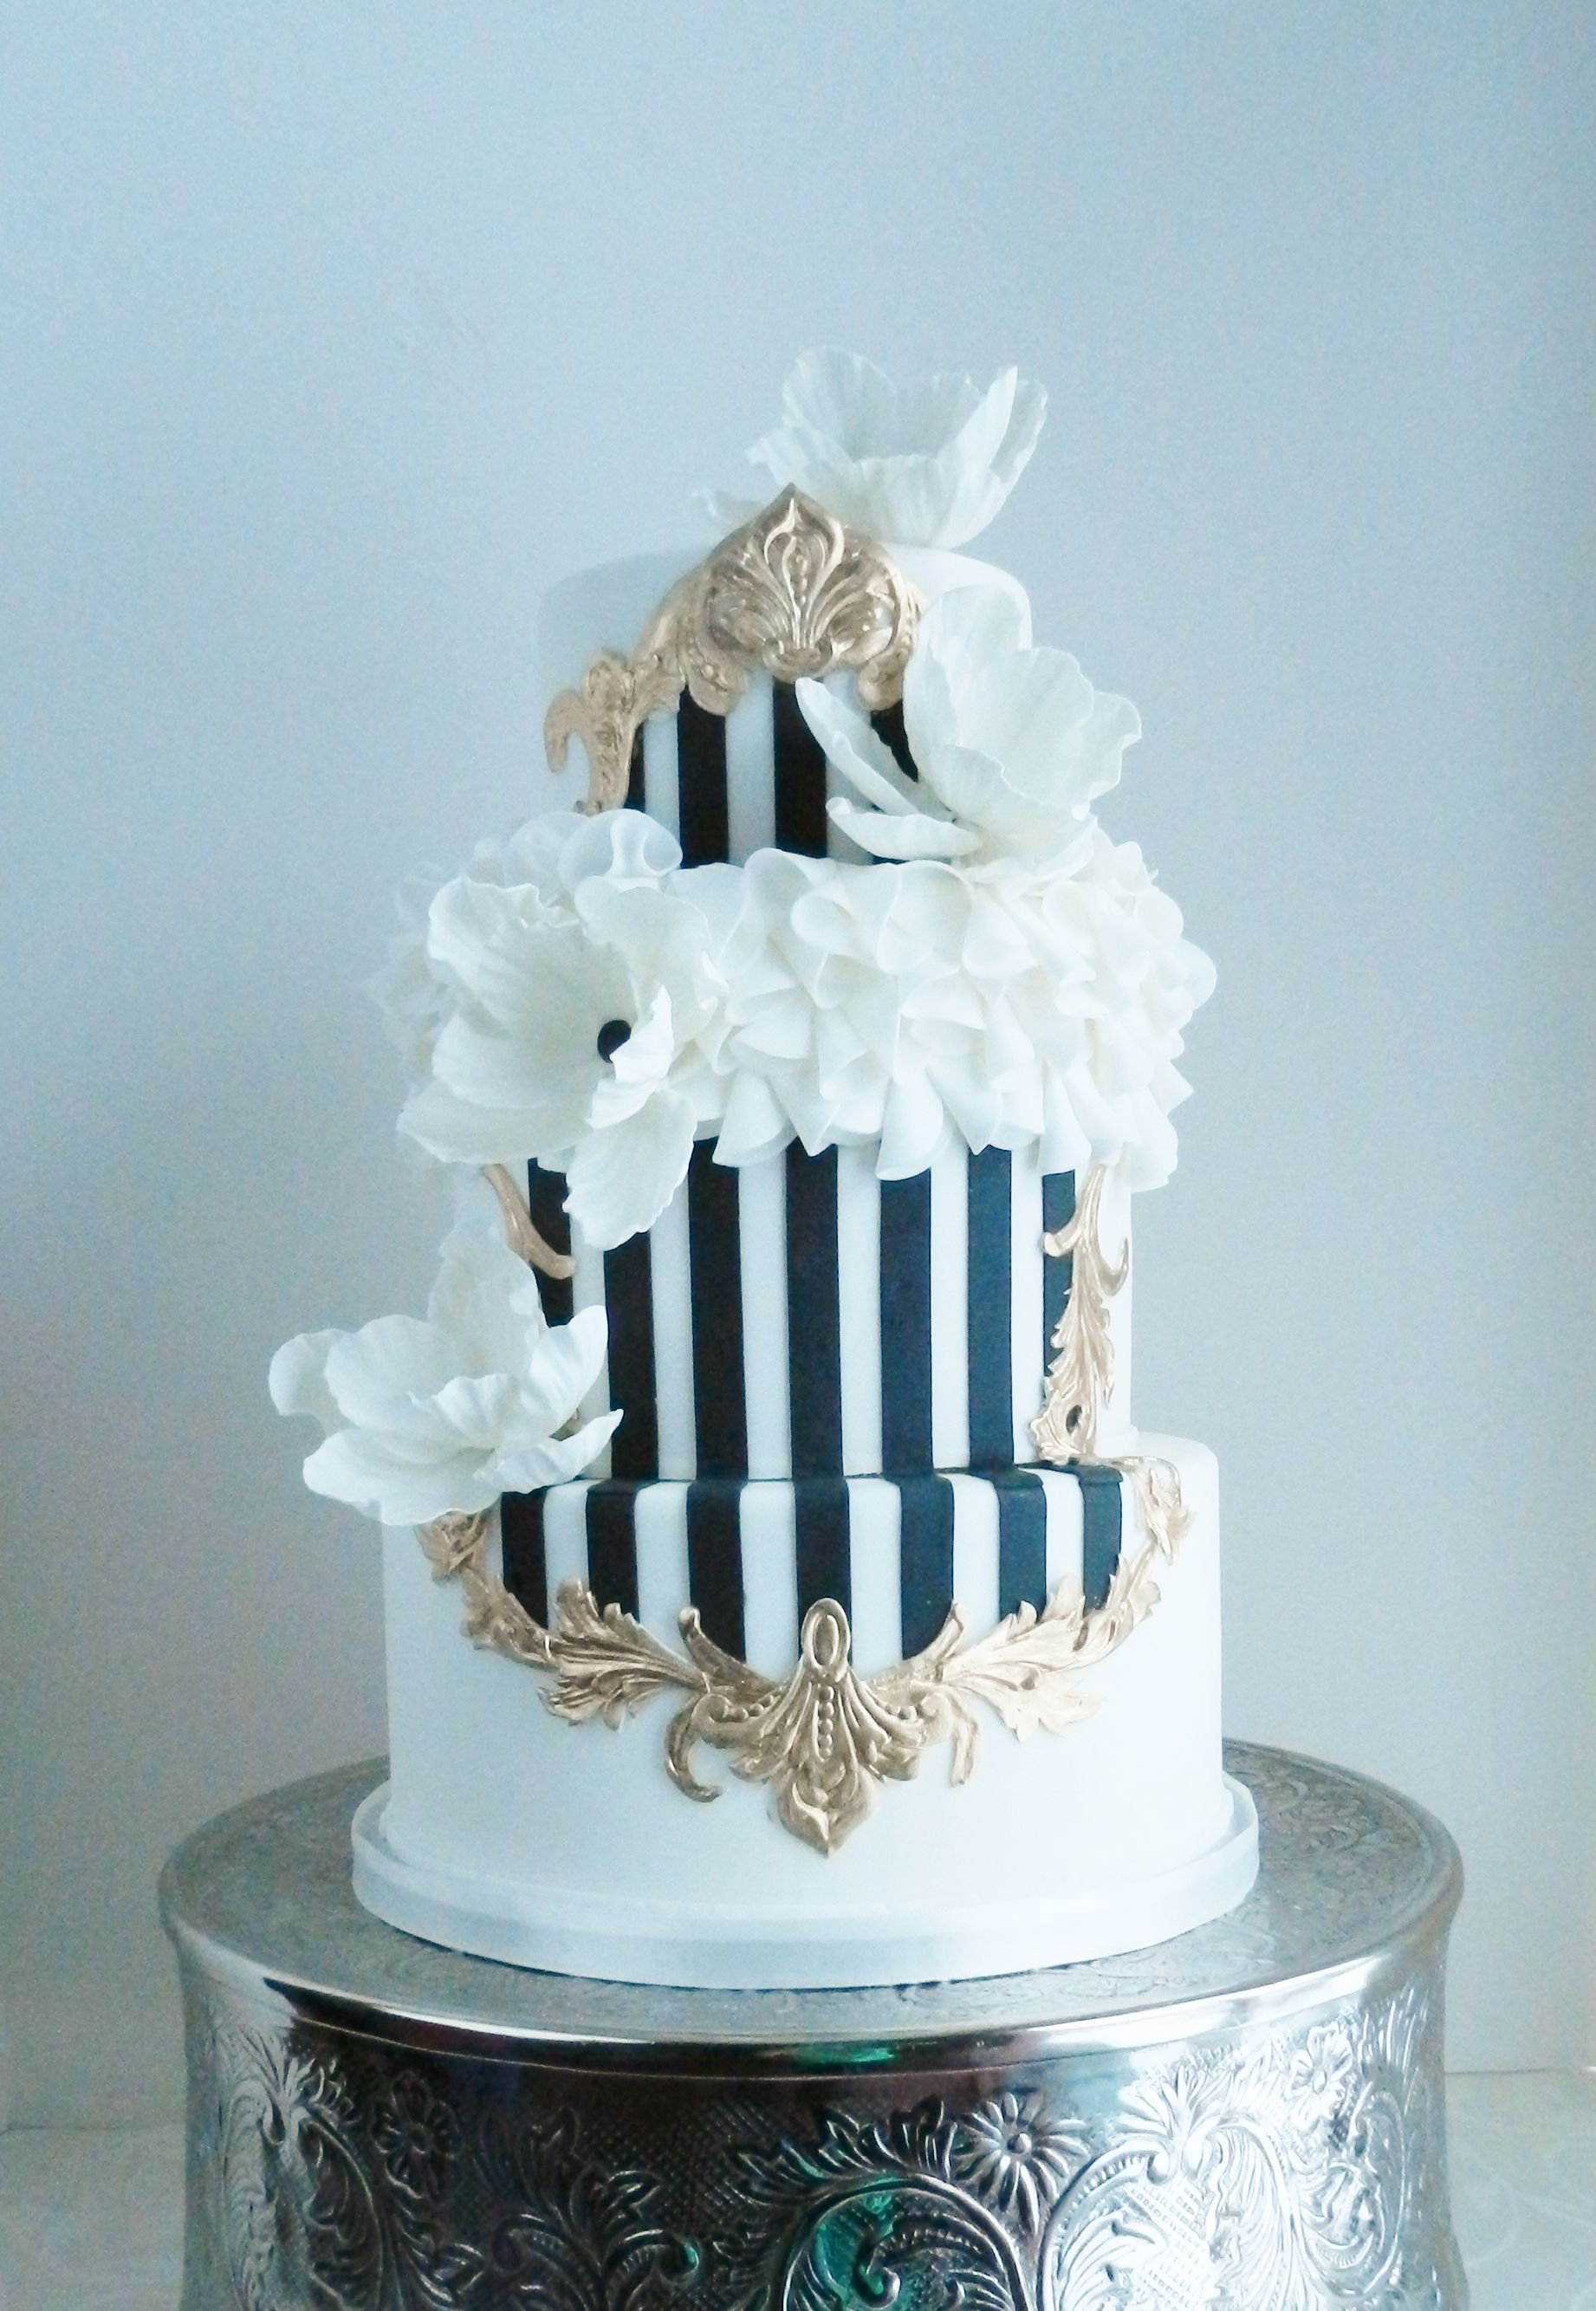 The Cake Whisperer has done it again with this white, black and gold cake. Ornate, luxurious and chic